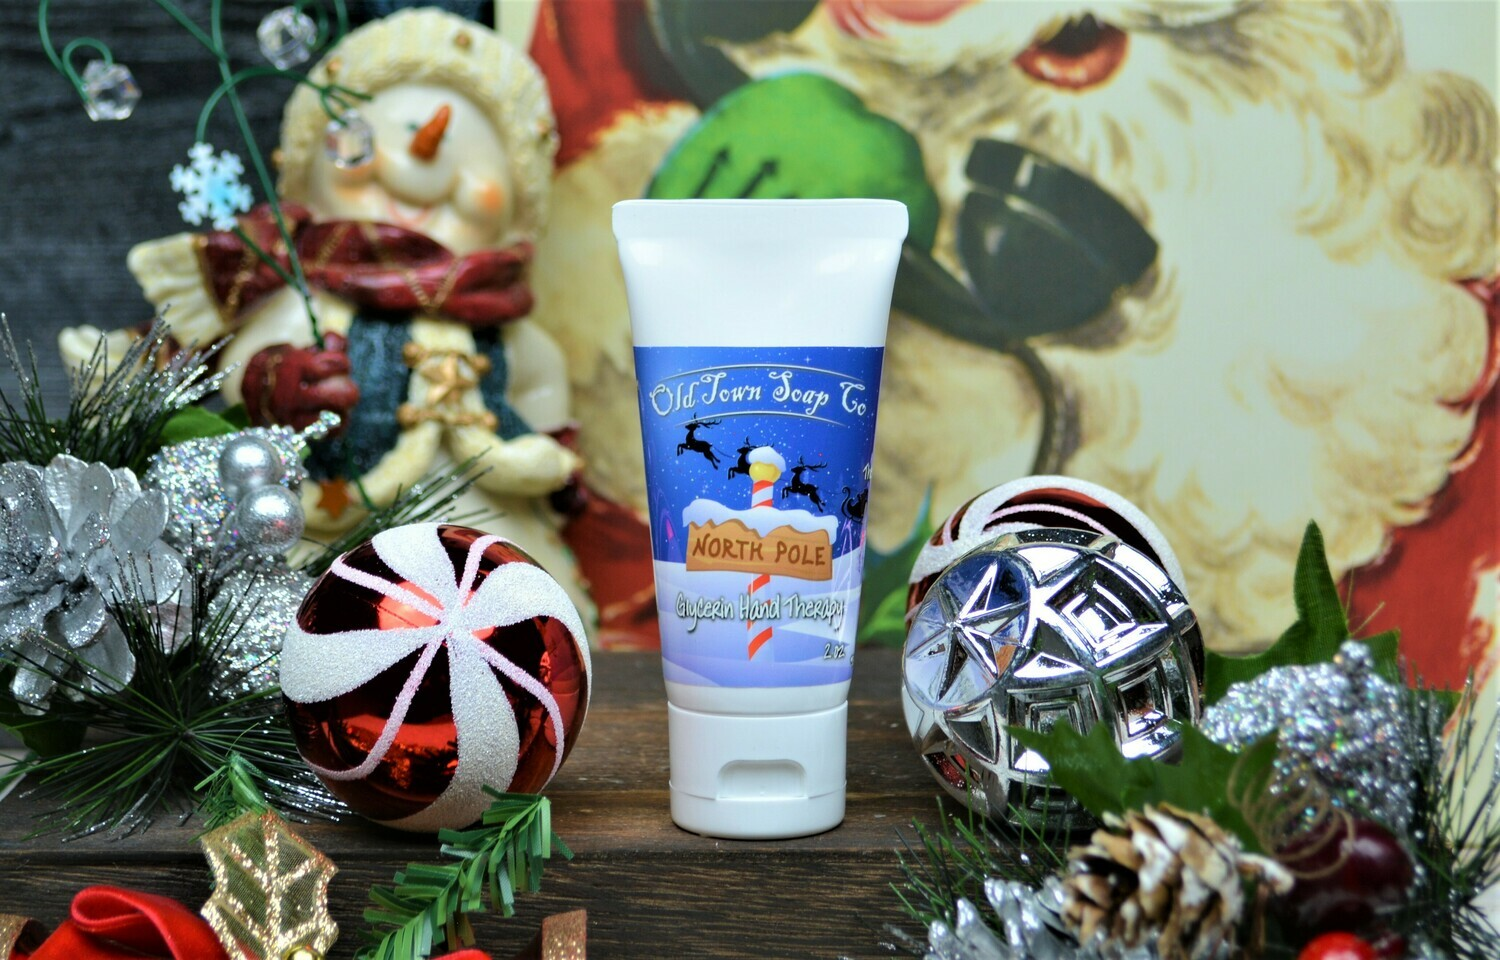 North Pole -2 oz Tube Hand Therapy